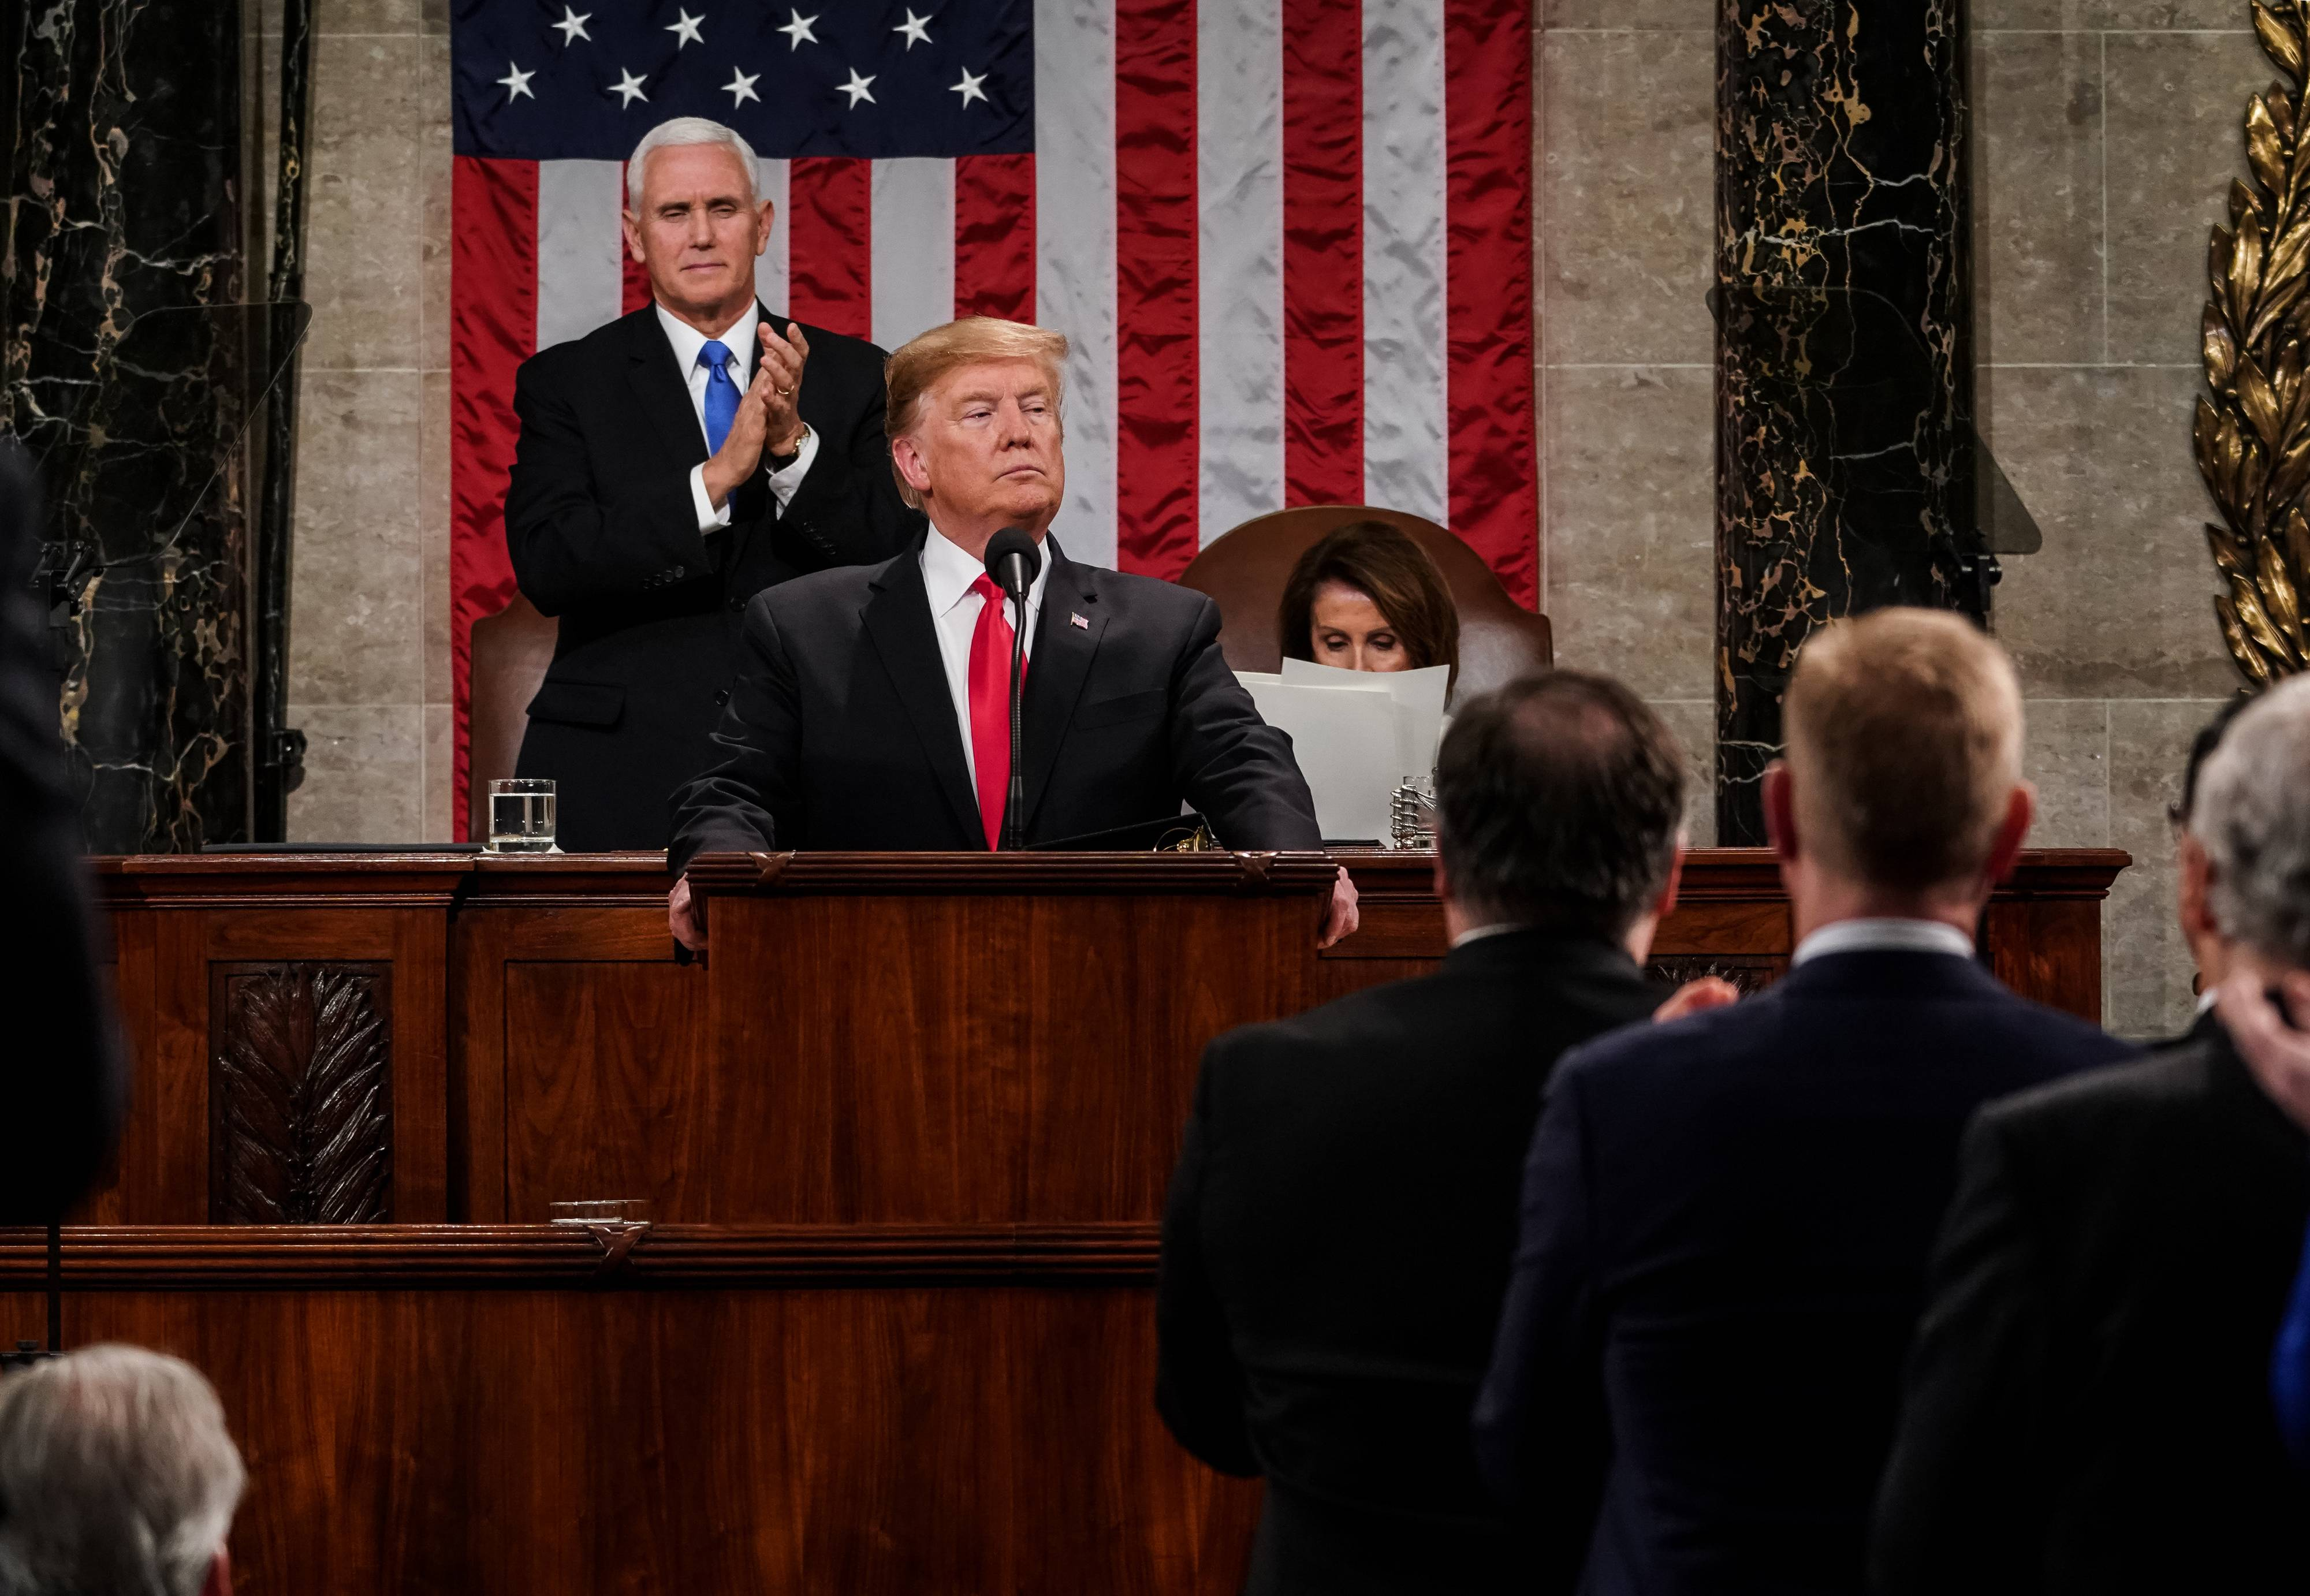 President Trump delivers State Of The Union address | Photo: Getty Images